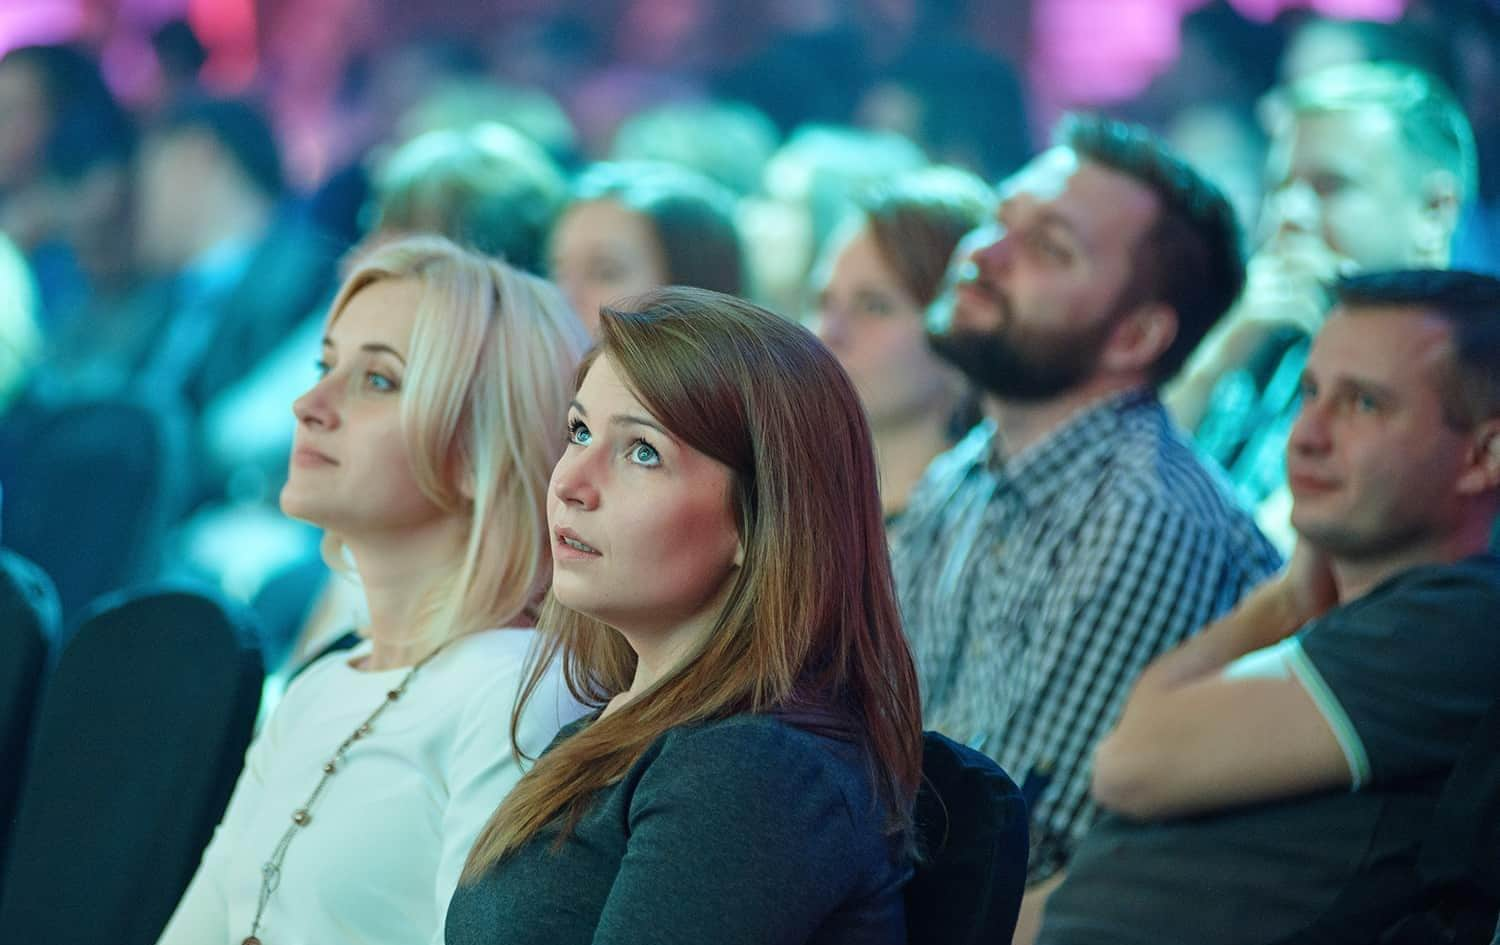 Two women watching presentation in a crowd